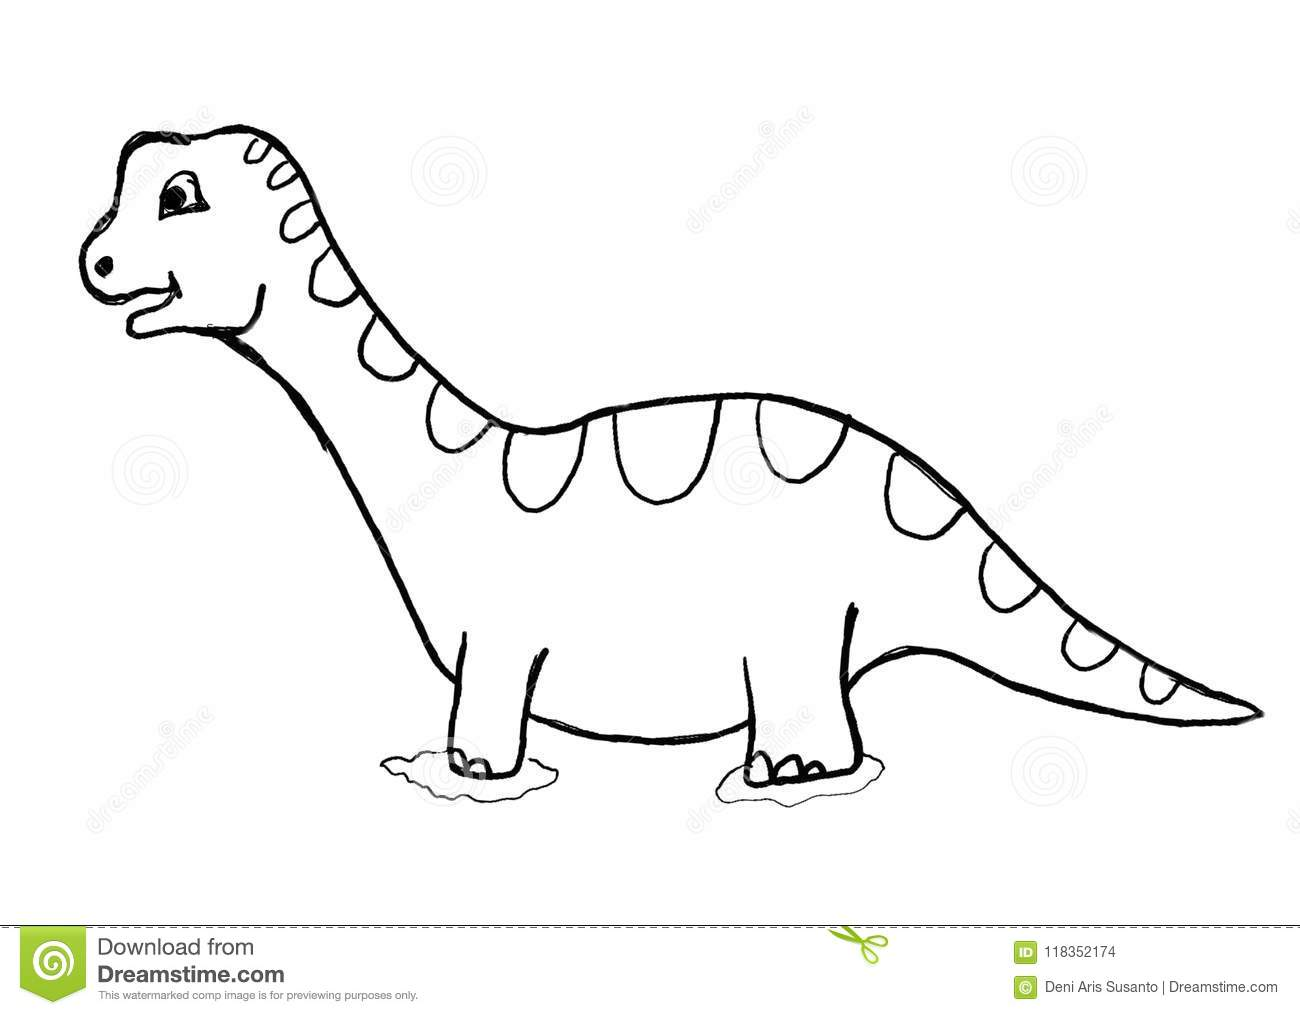 Dinosaur Outline Cartoon Colouring Page Stock Illustration